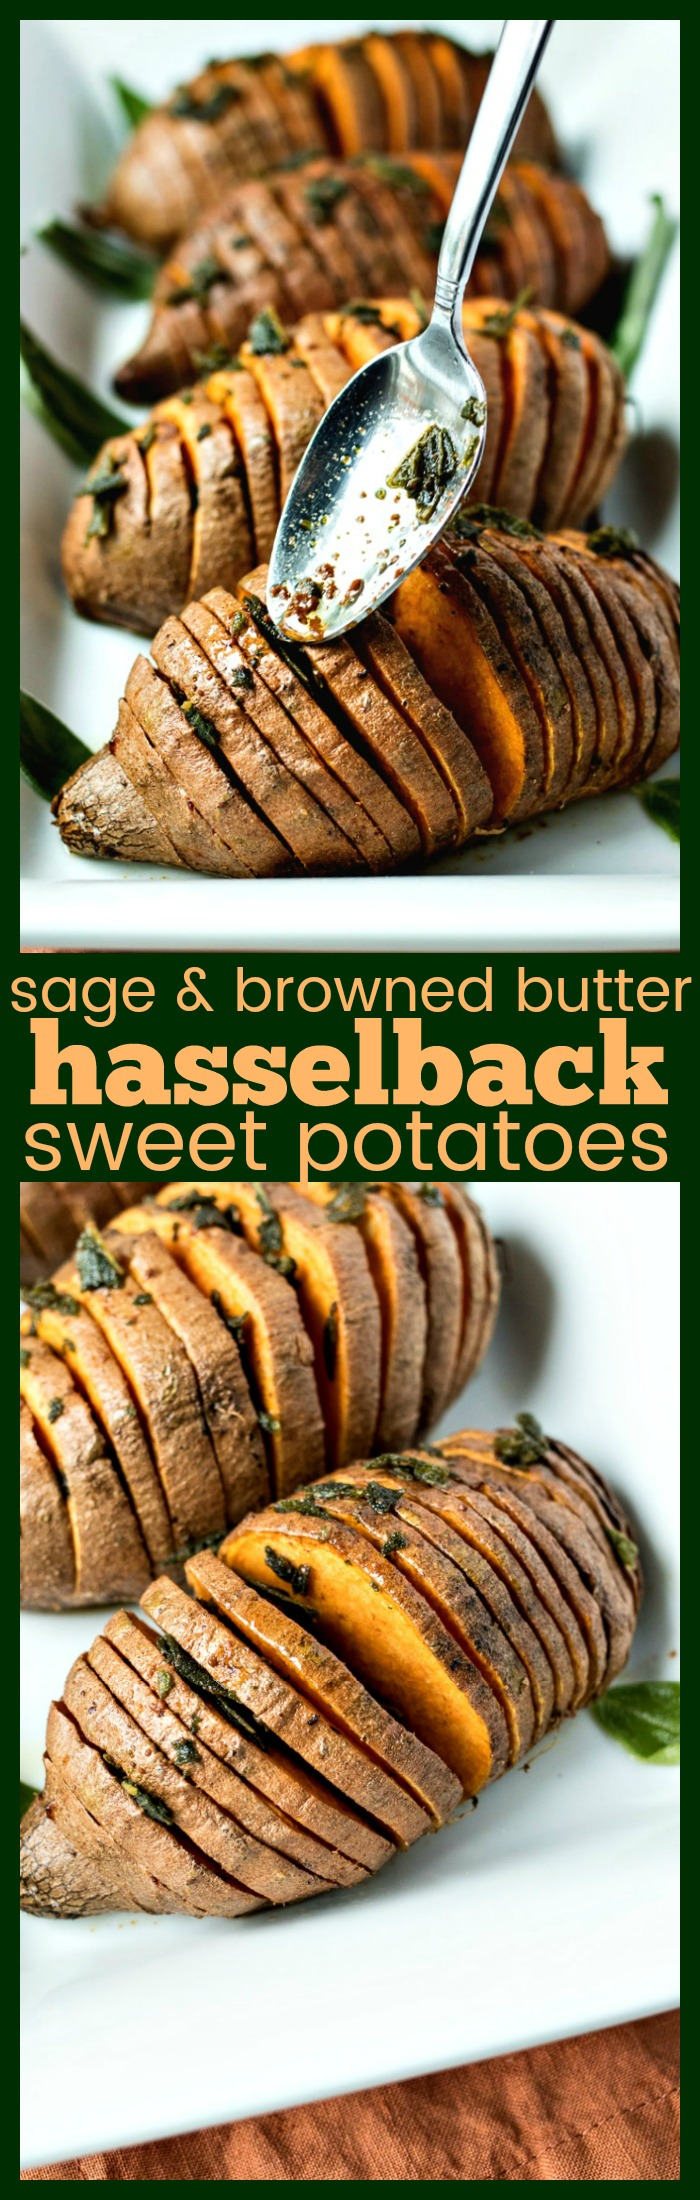 Sage & Browned Butter Hasselback Sweet Potatoes photo collage